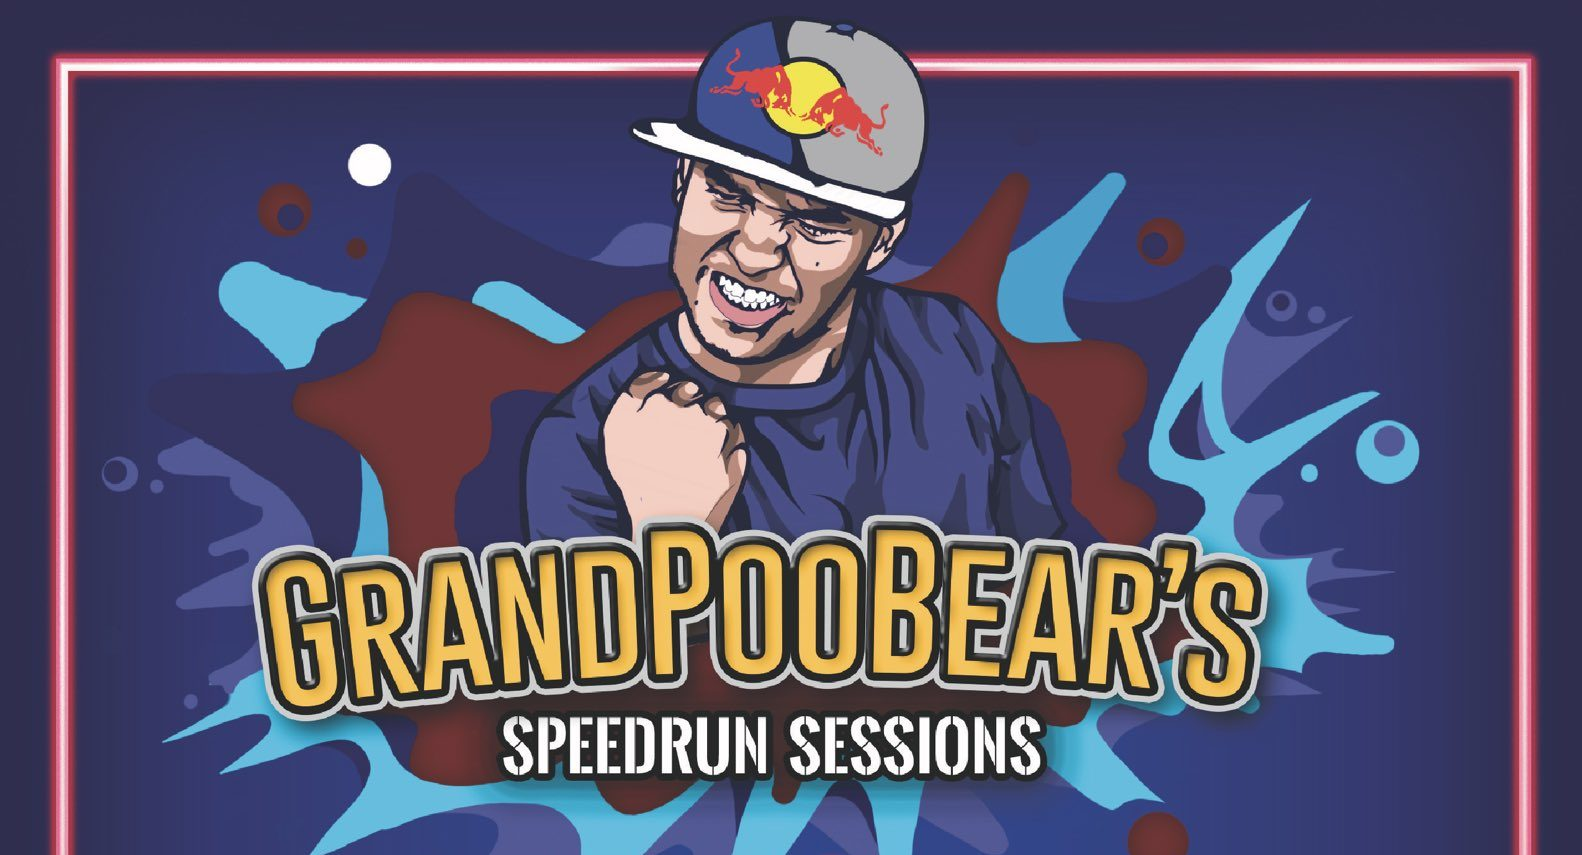 GrandPooBear's SpeedRun Sessions – Splash